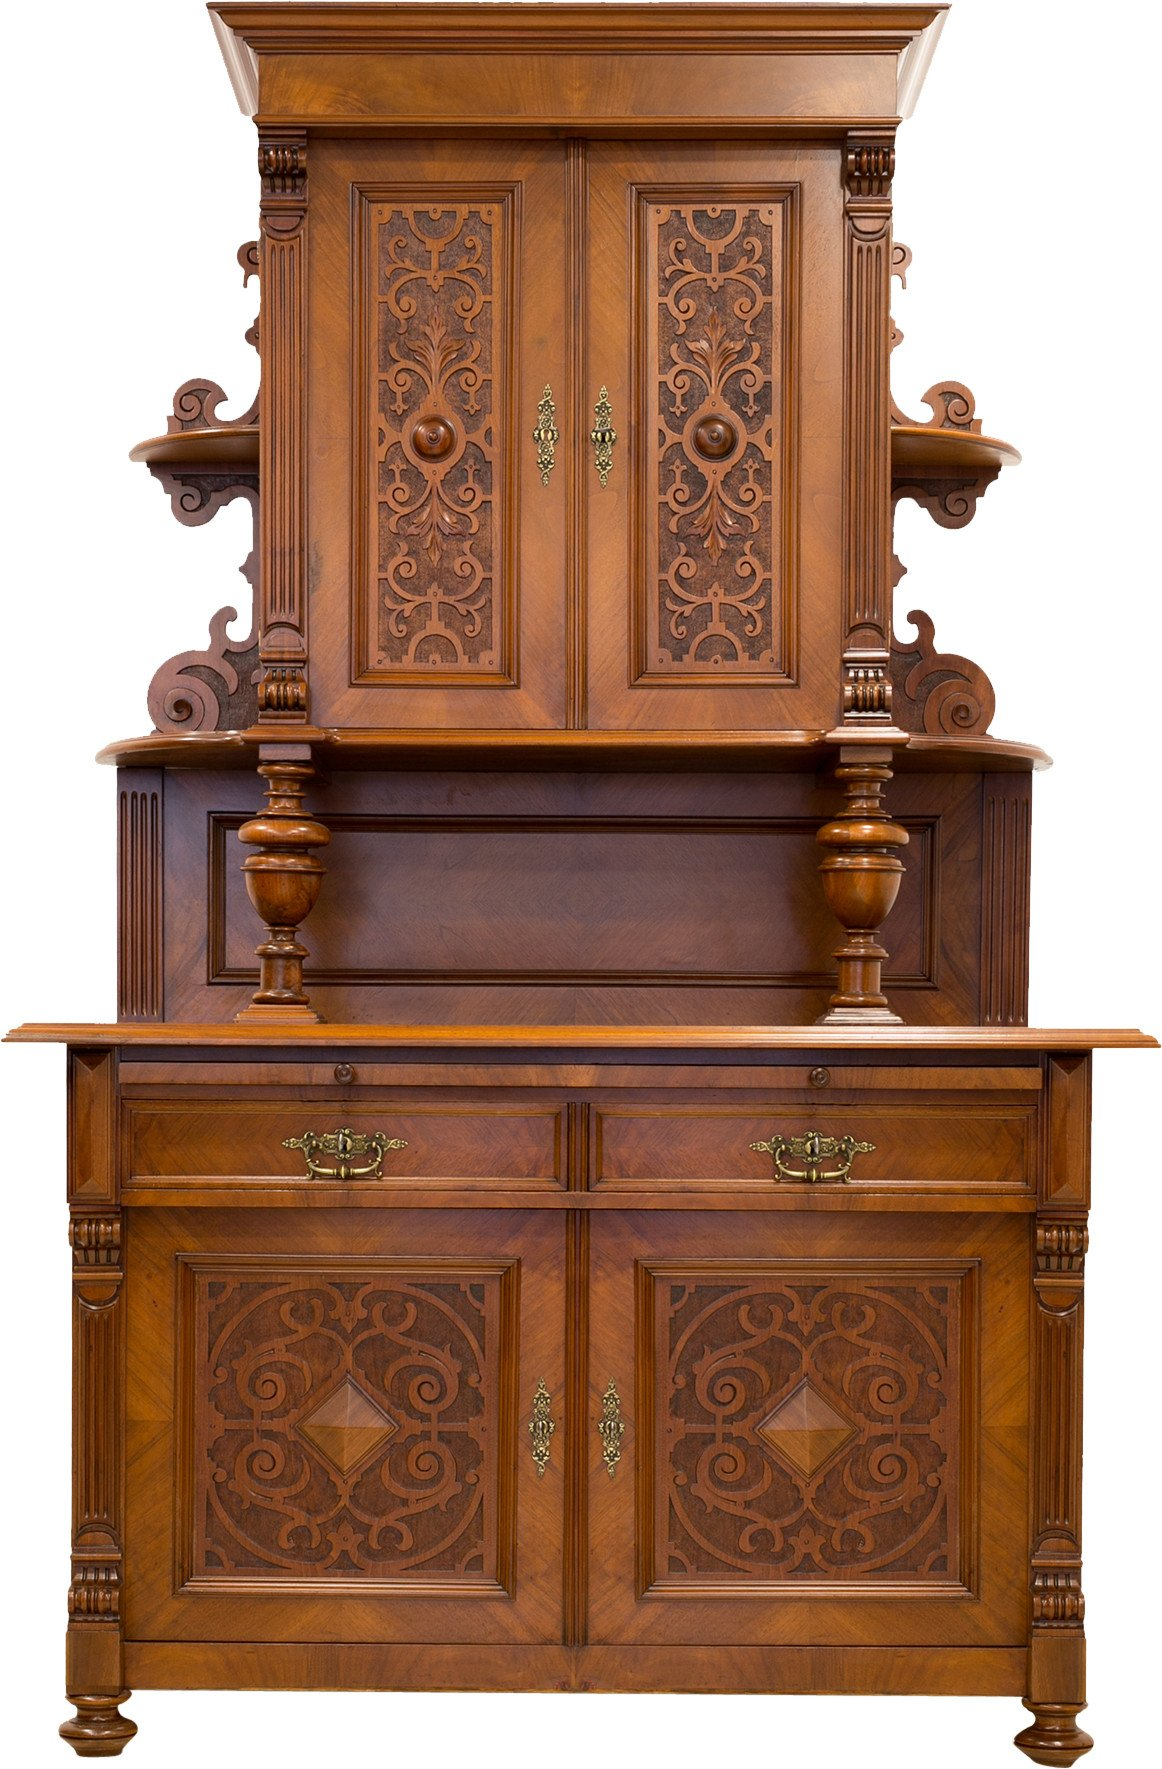 Cupboard, Germany, 2nd half of 19th C.